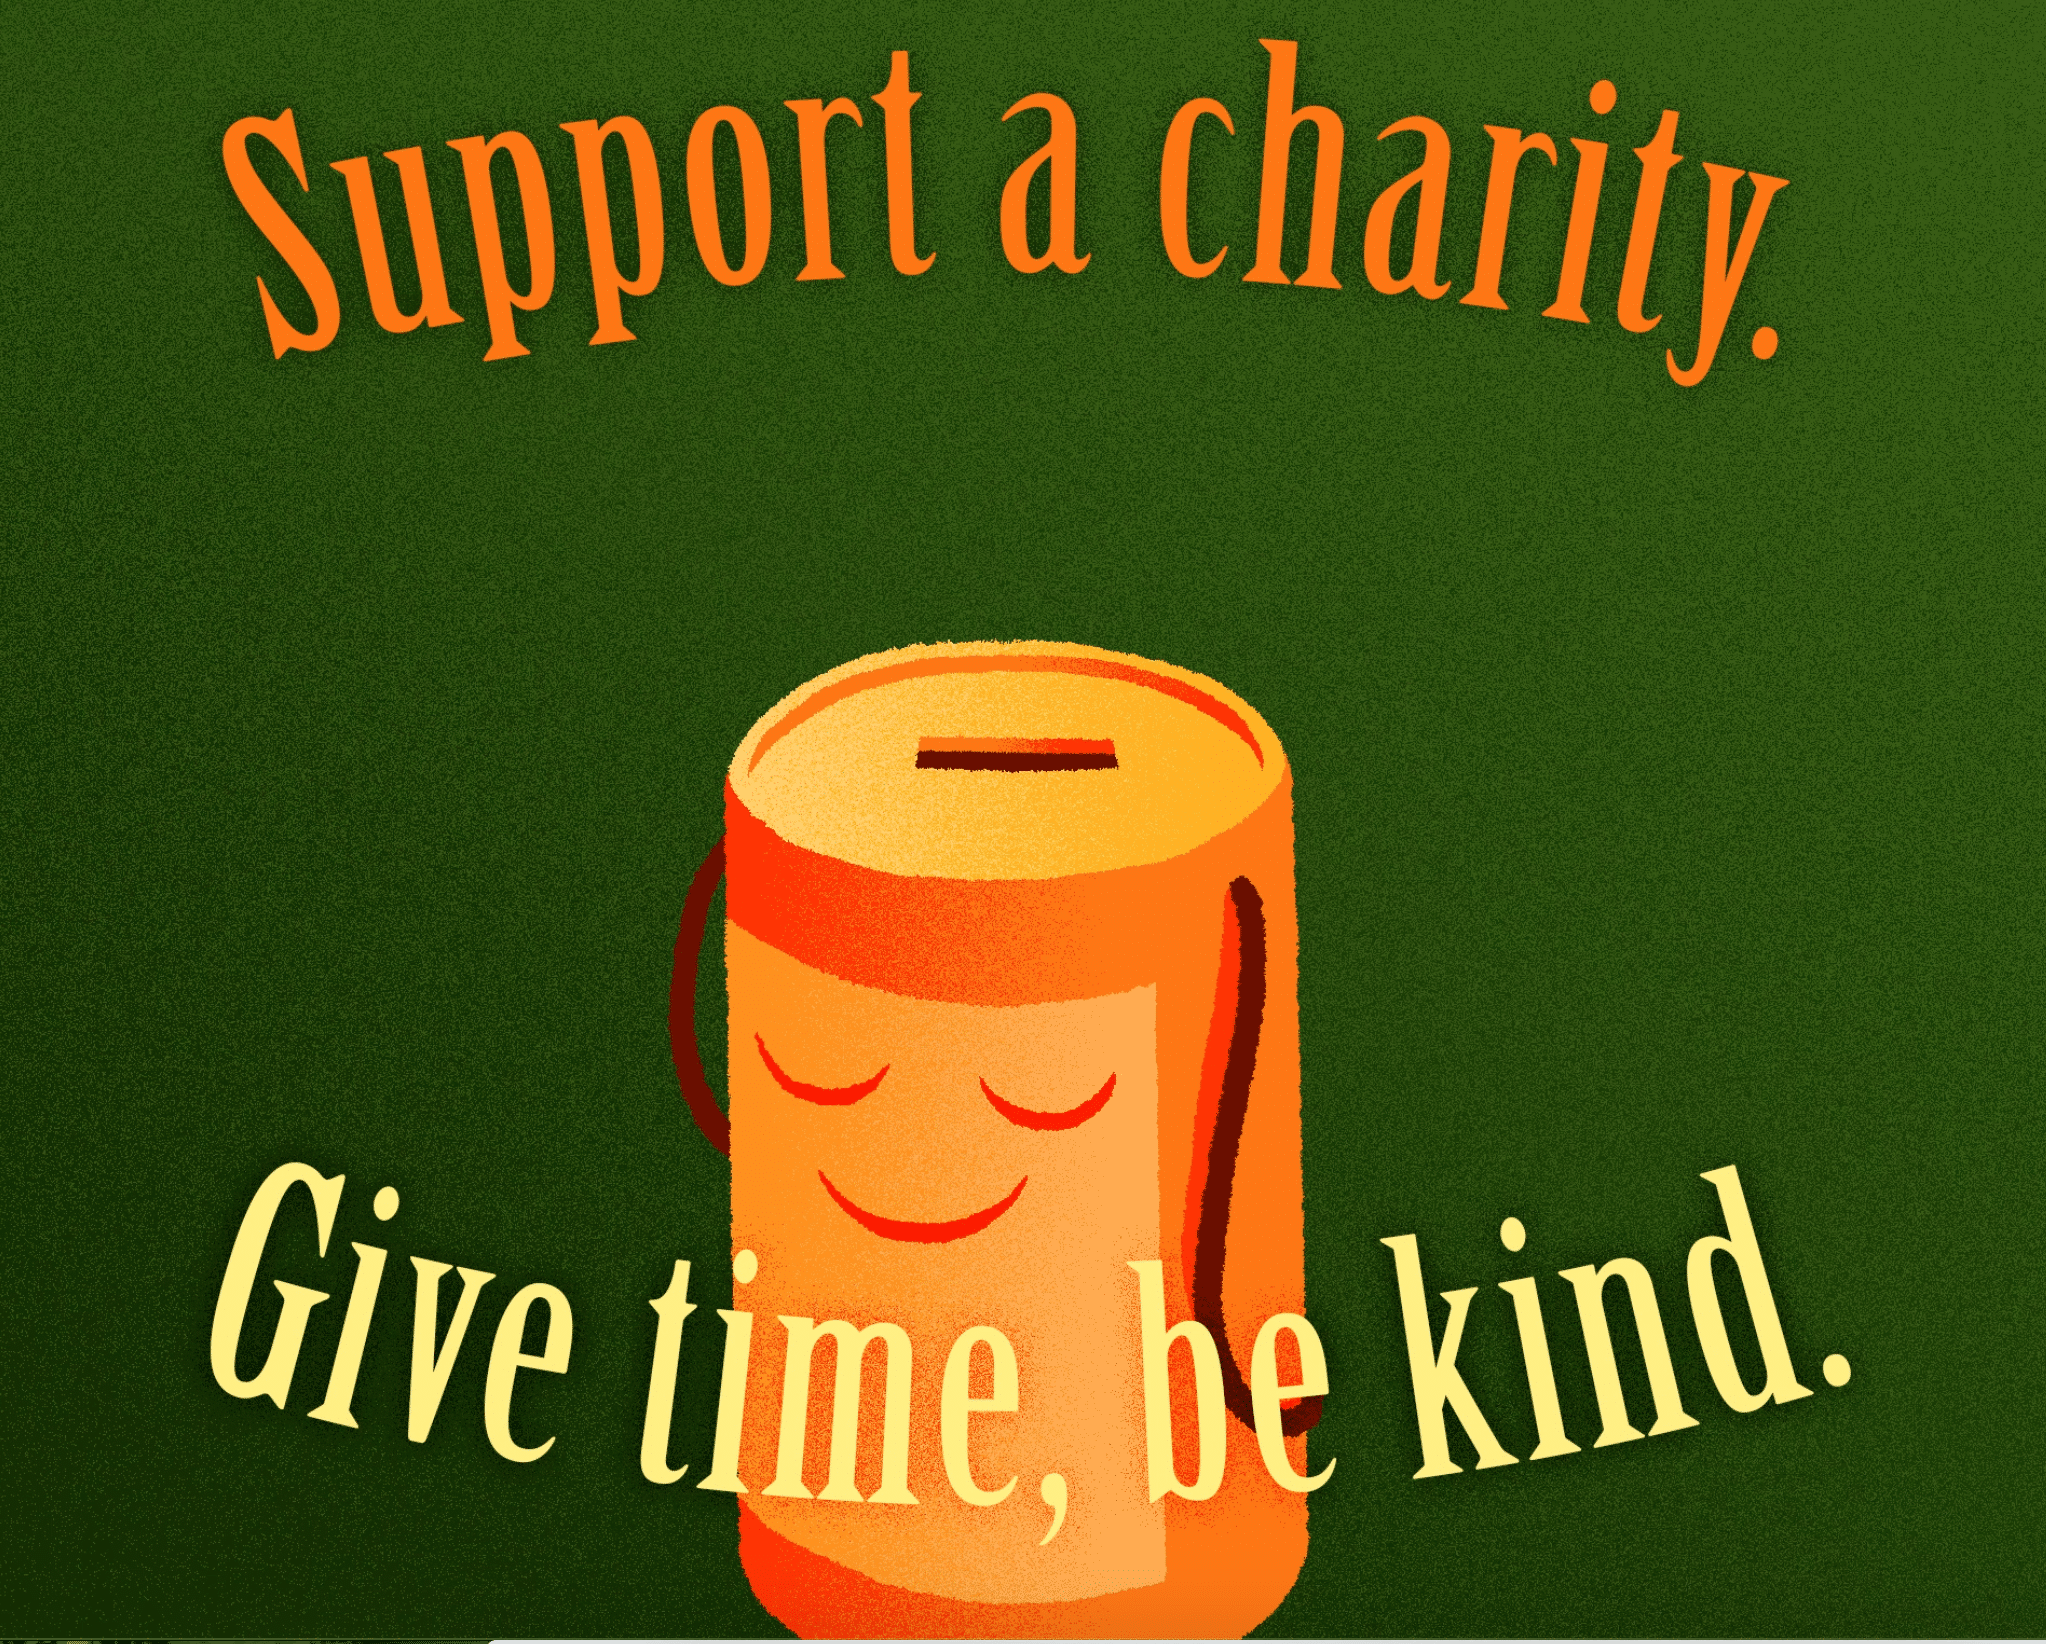 Support a charity give time be kind